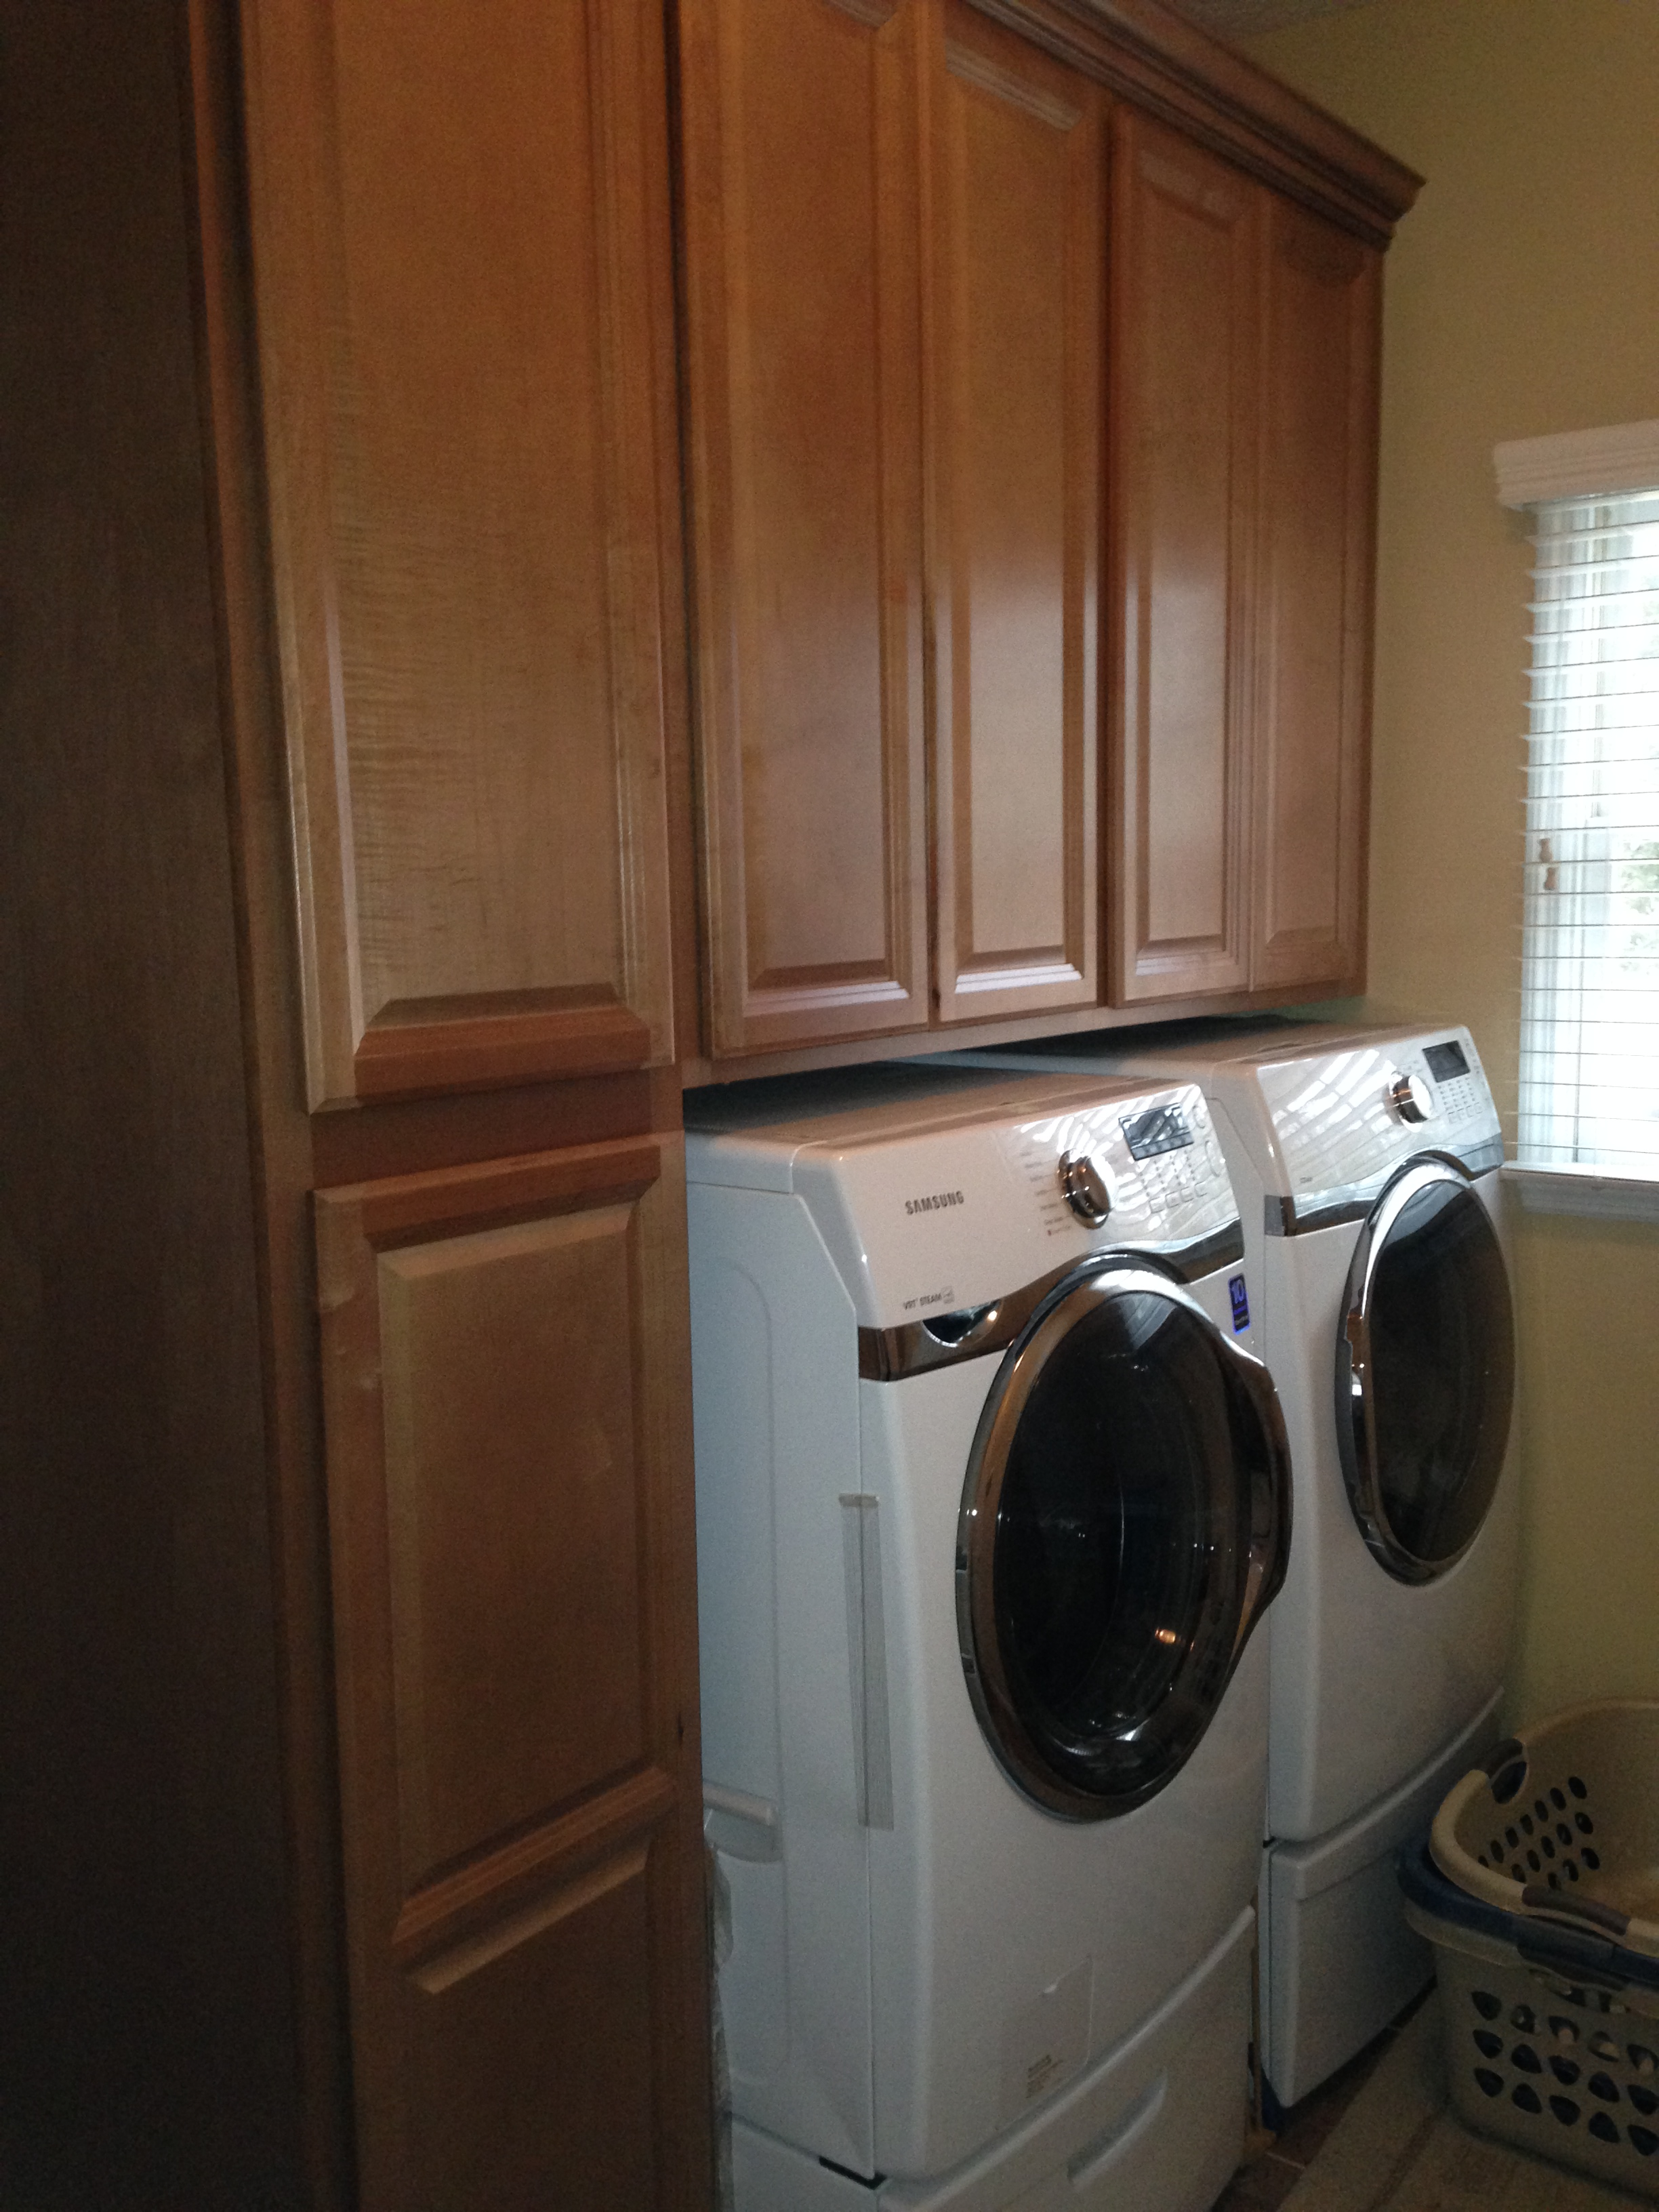 The Laundry Room (after)